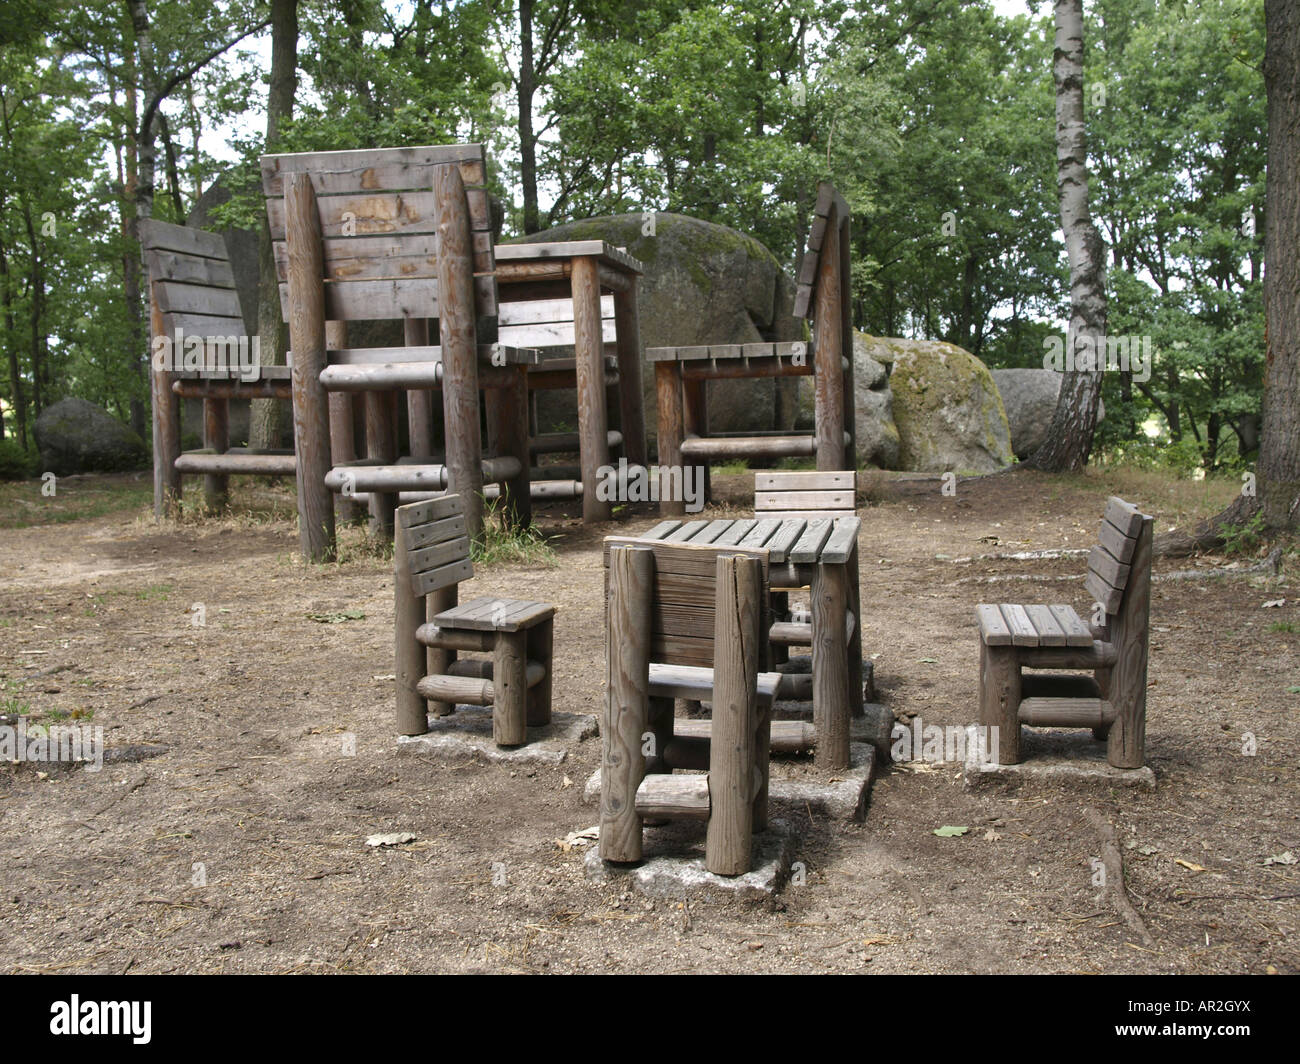 Natural Park Blockheide, Small Table And Chairs In Front Of Oversized  Wooden Chairs And Table, Austria, Lower Austria, Waldvier